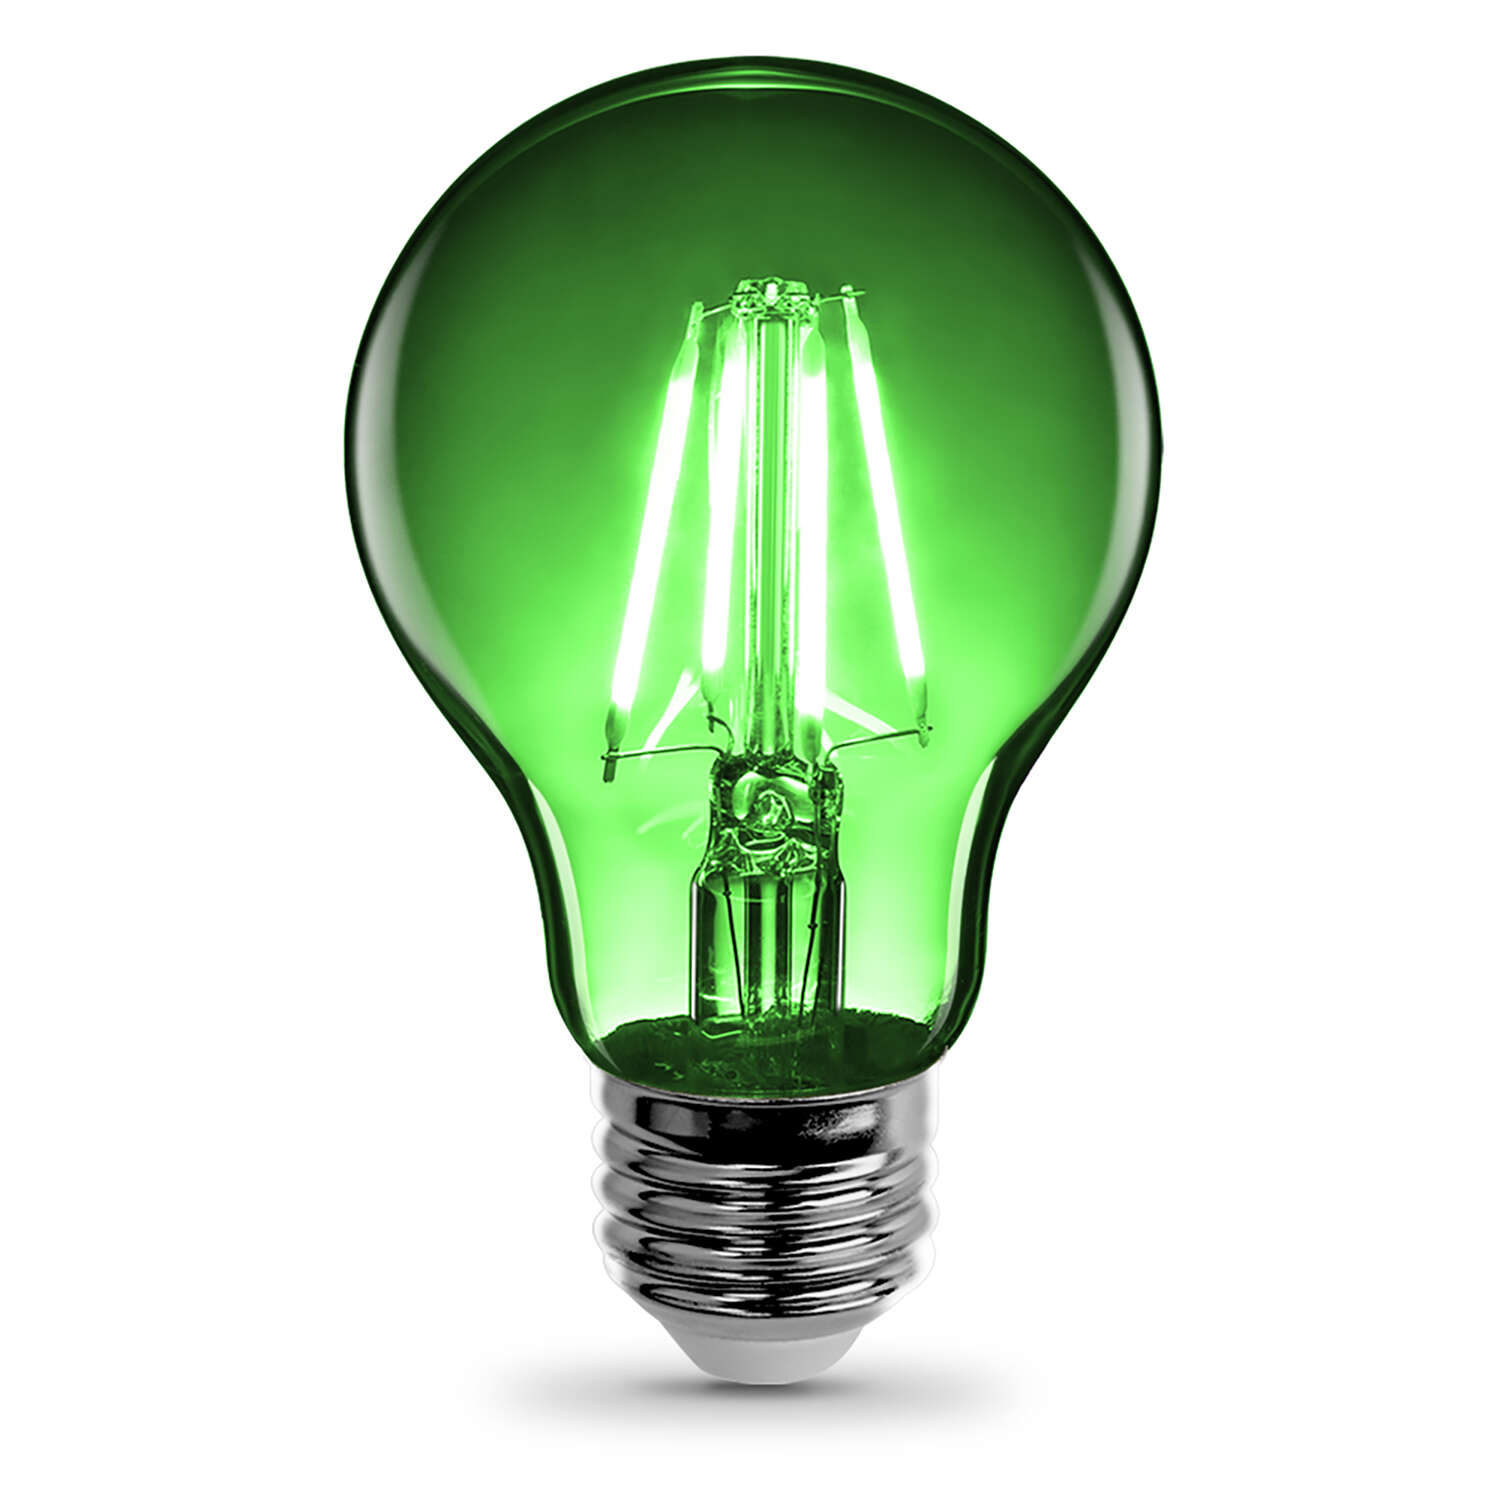 FEIT Electric  Filament  3.6 watts A19  LED Bulb  450 lumens Green  A-Line  30 Watt Equivalence